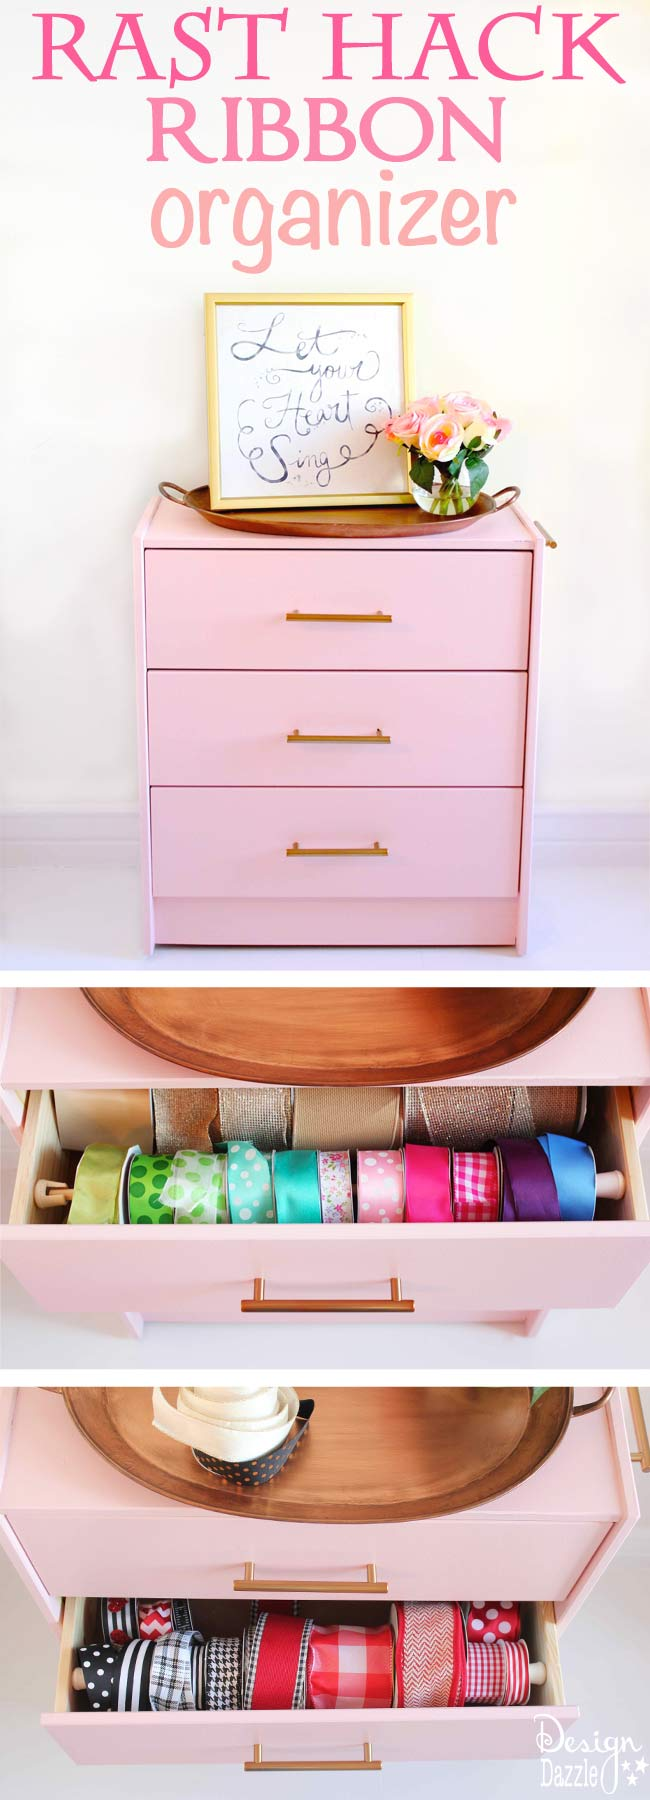 14 IKEA RAST hacks and makeovers that take a ridiculously cheap piece of furniture and turn it into something epic! You'll love these easy DIY home projects and furniture upgrades!